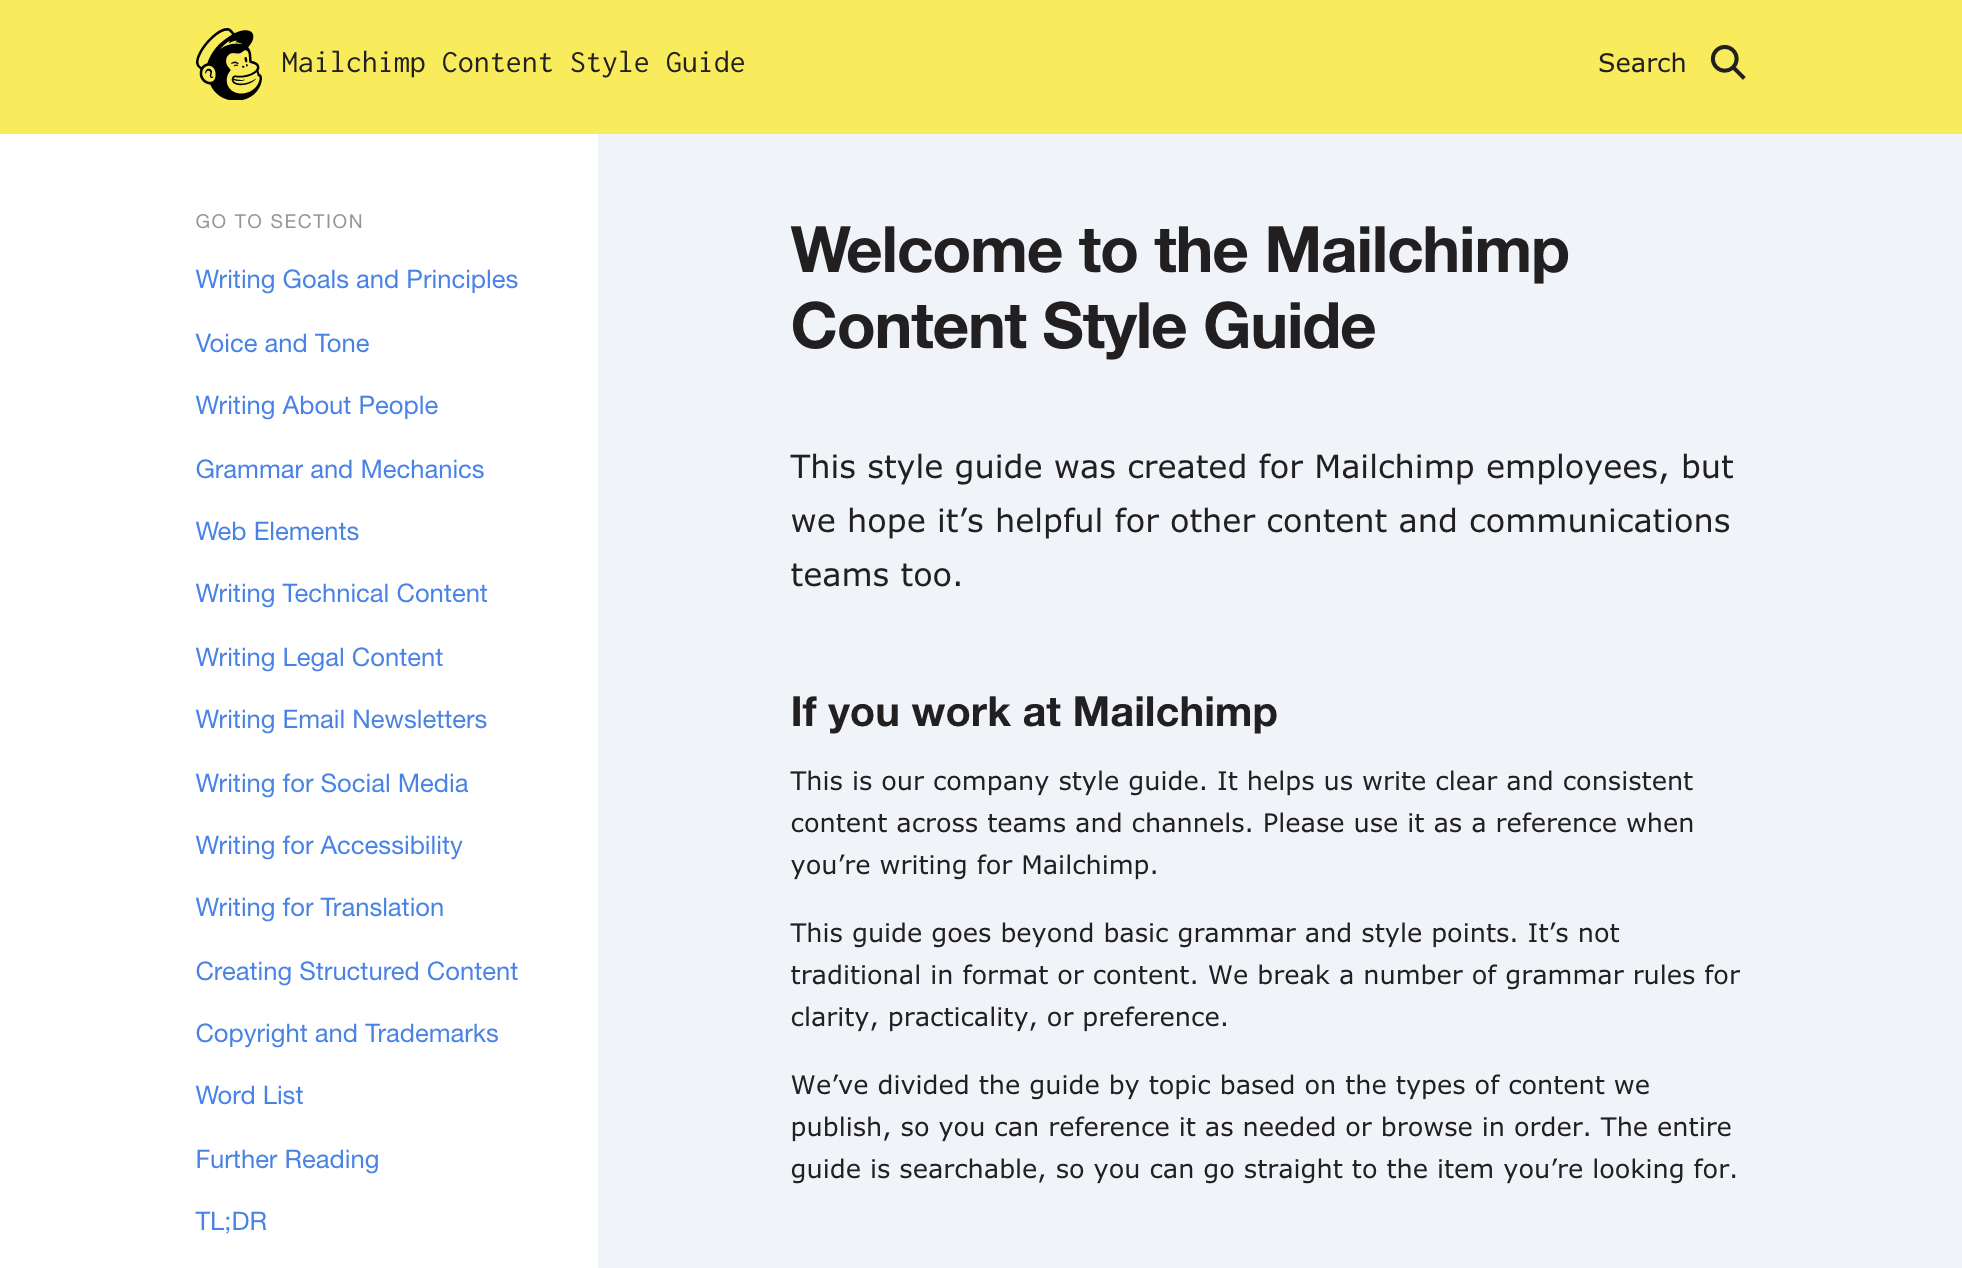 Extract from Mailchimp's Content Style Guide which is publicly available under Creative Commons Licence to others to use as a basis for their own guidelines.